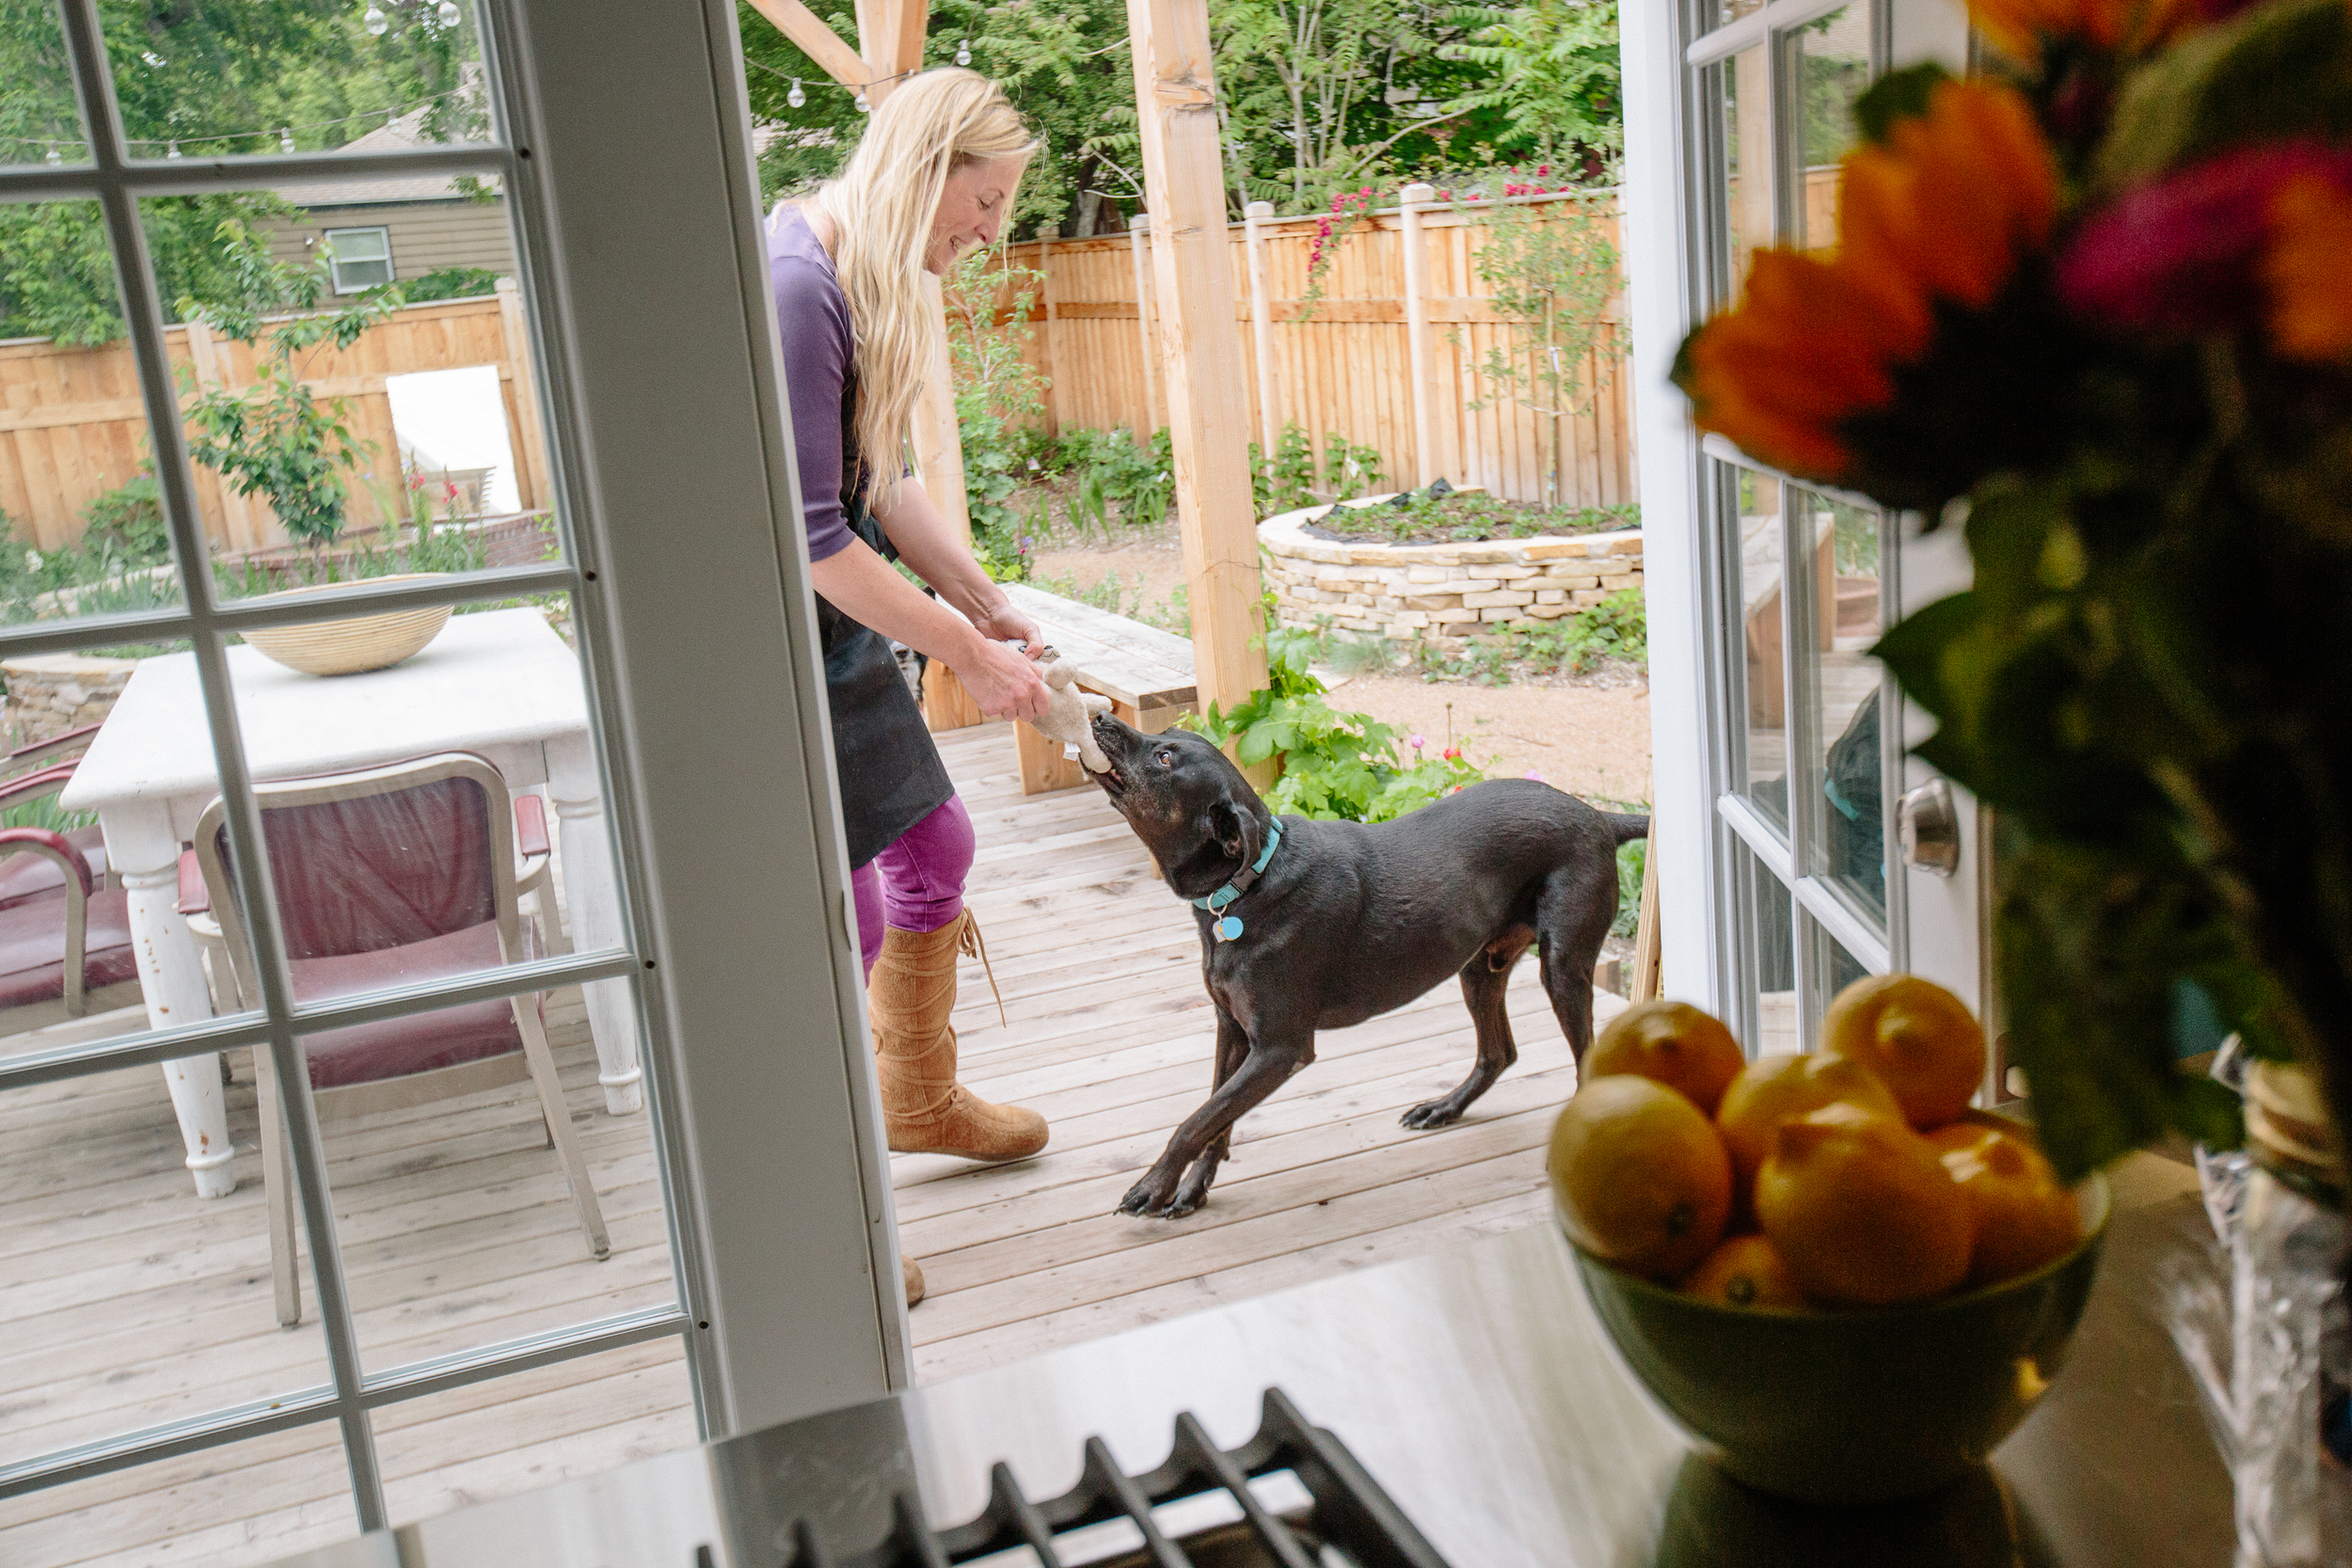 Just off the kitchen is the back deck, and beyond that, the garden.